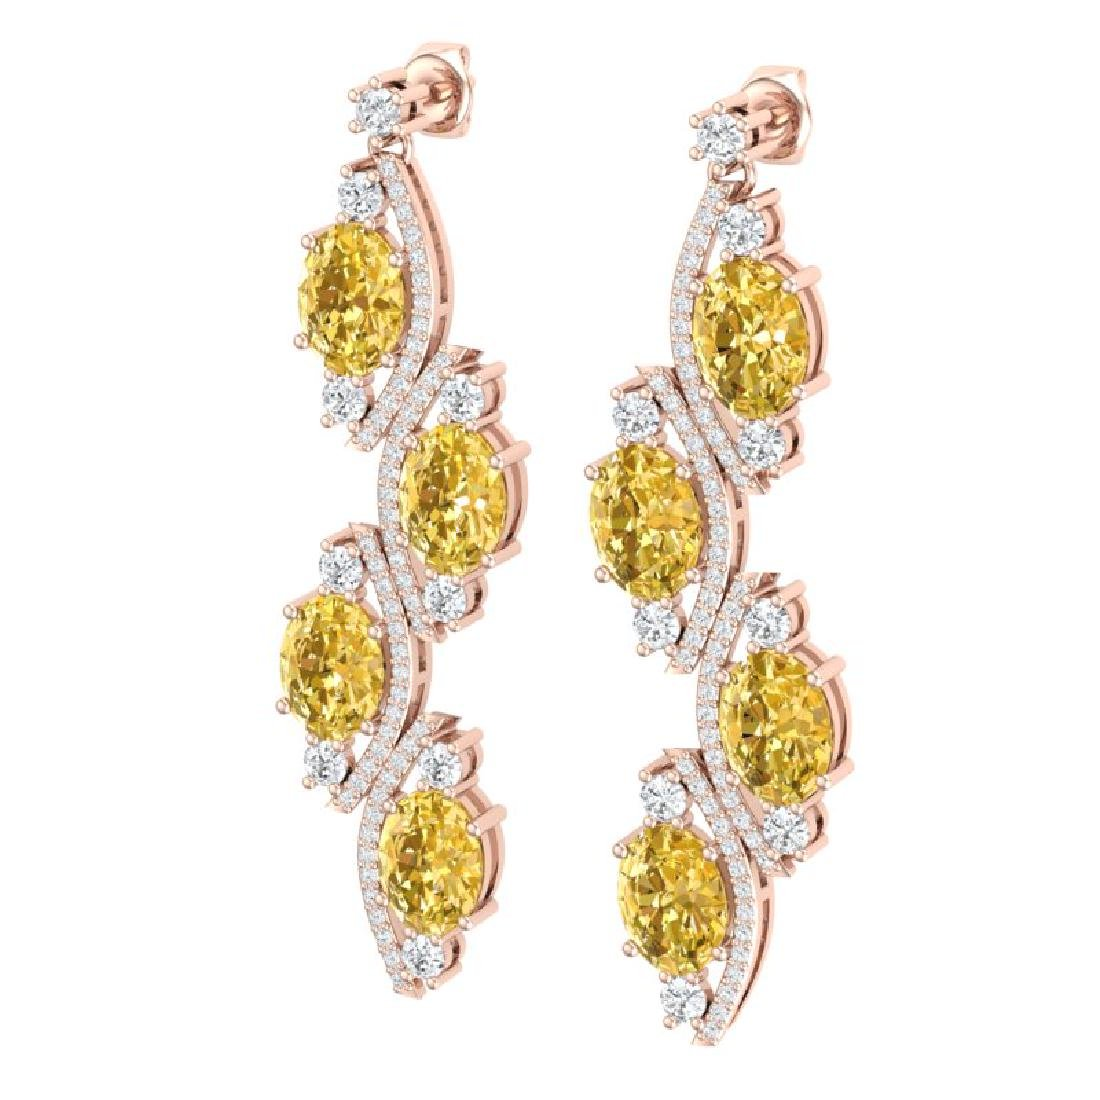 13.32 CTW Royalty Canary Citrine & VS Diamond Earrings - 2